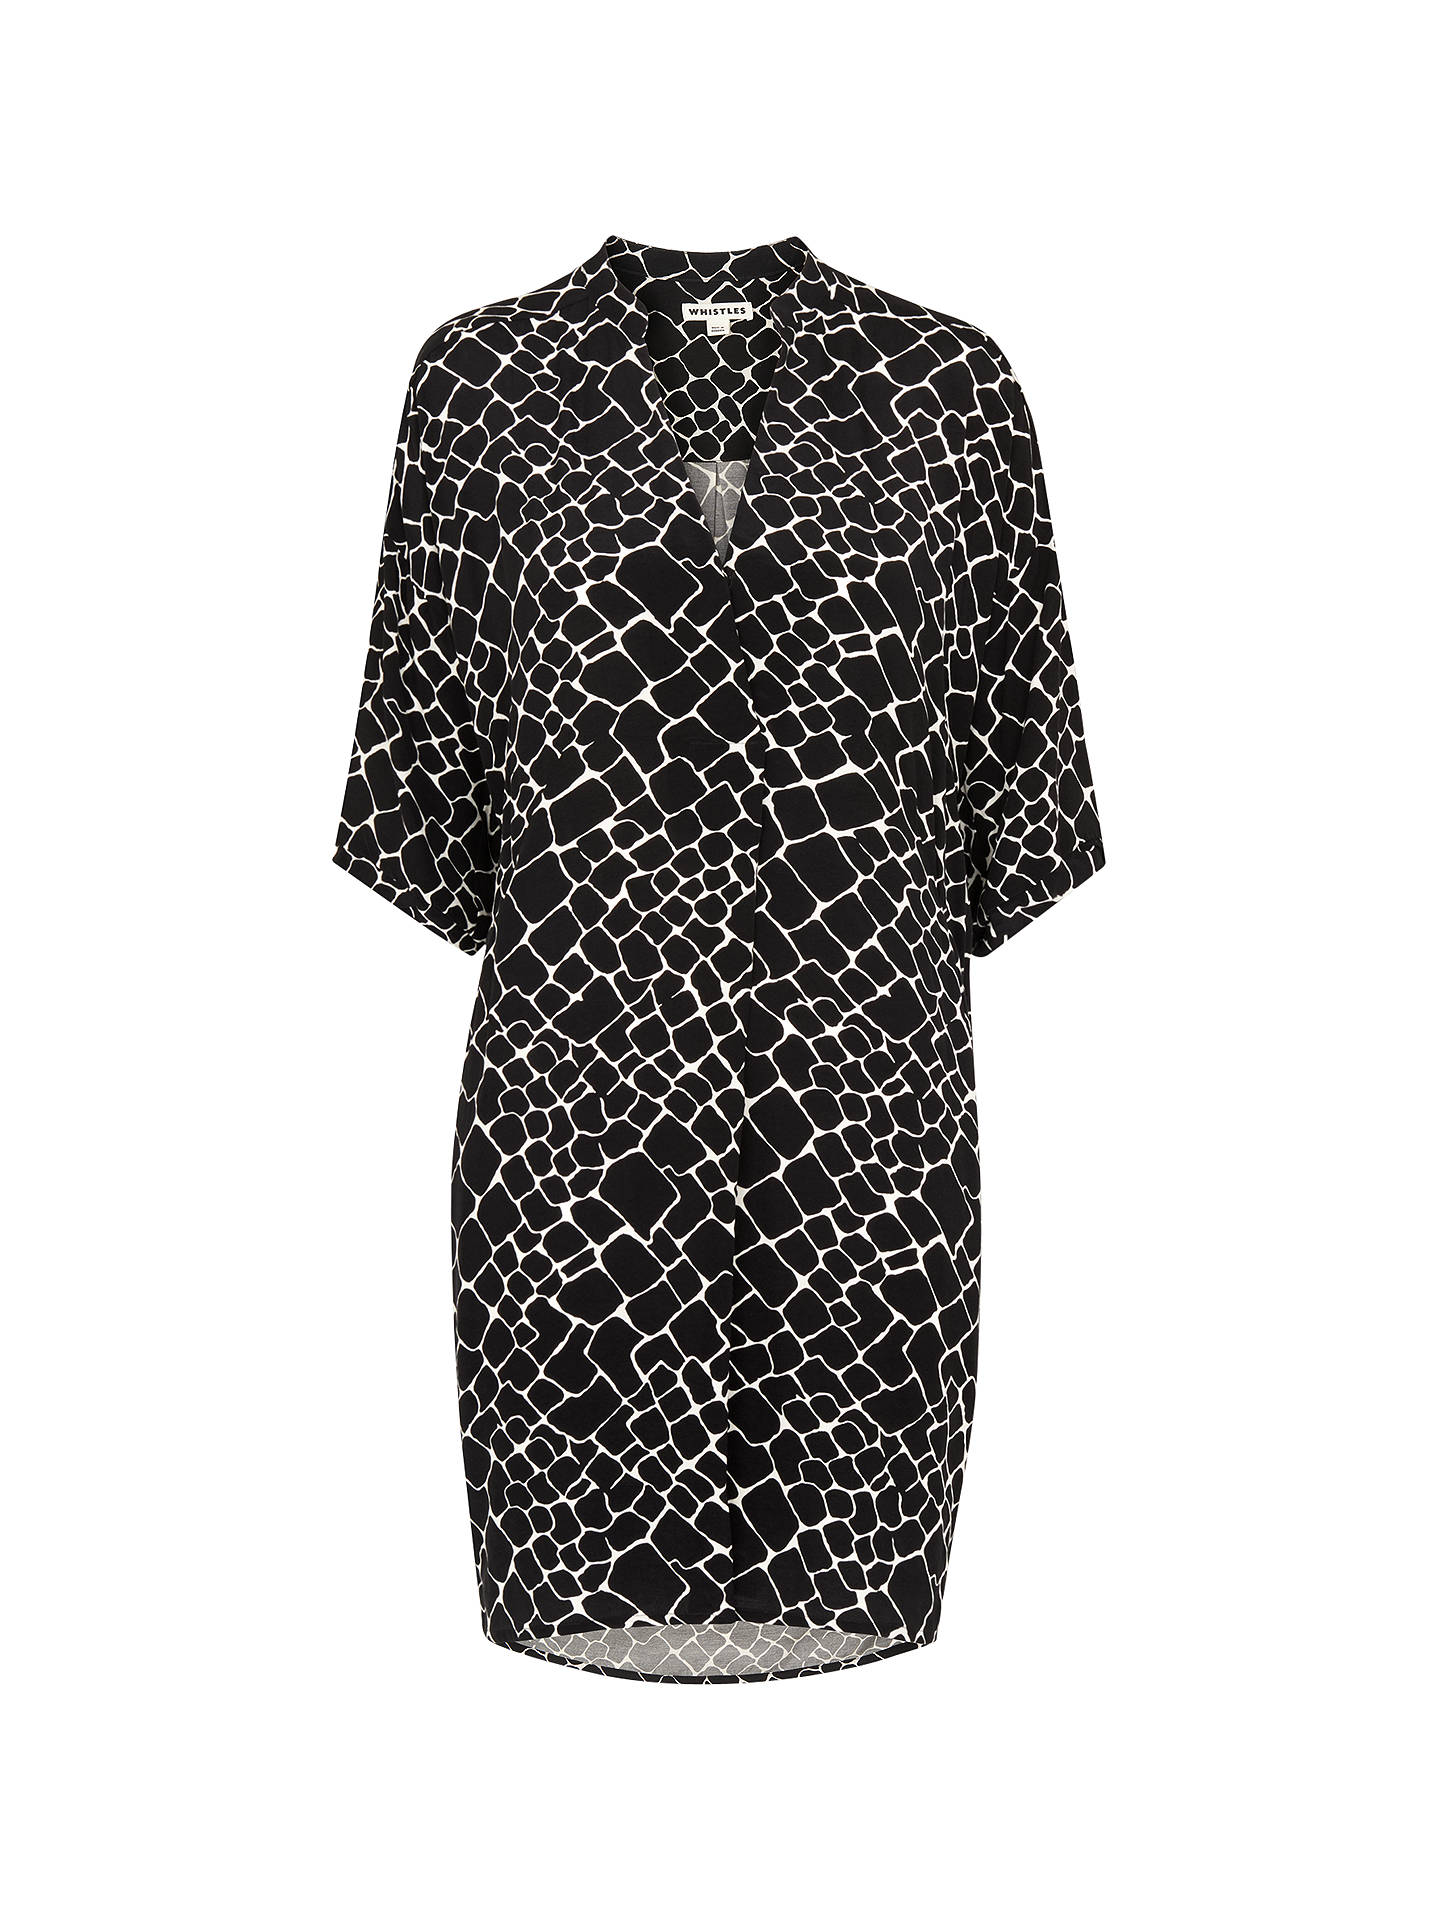 7baff9dd59 Whistles Giraffe Print Lola Dress at John Lewis   Partners